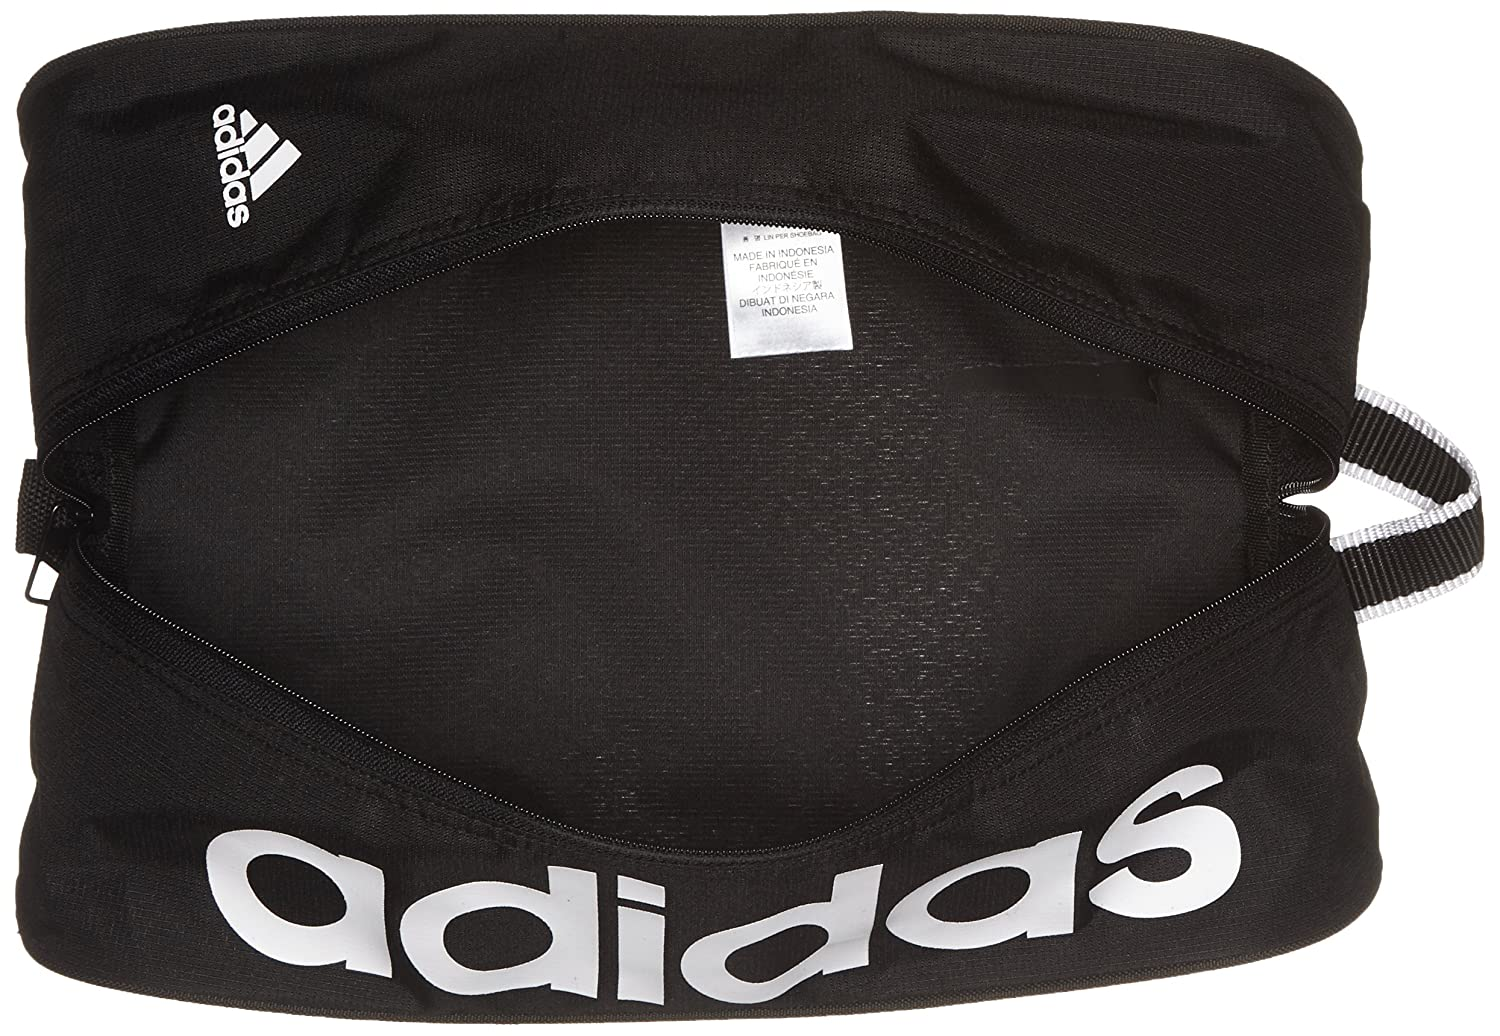 adidas performance bag